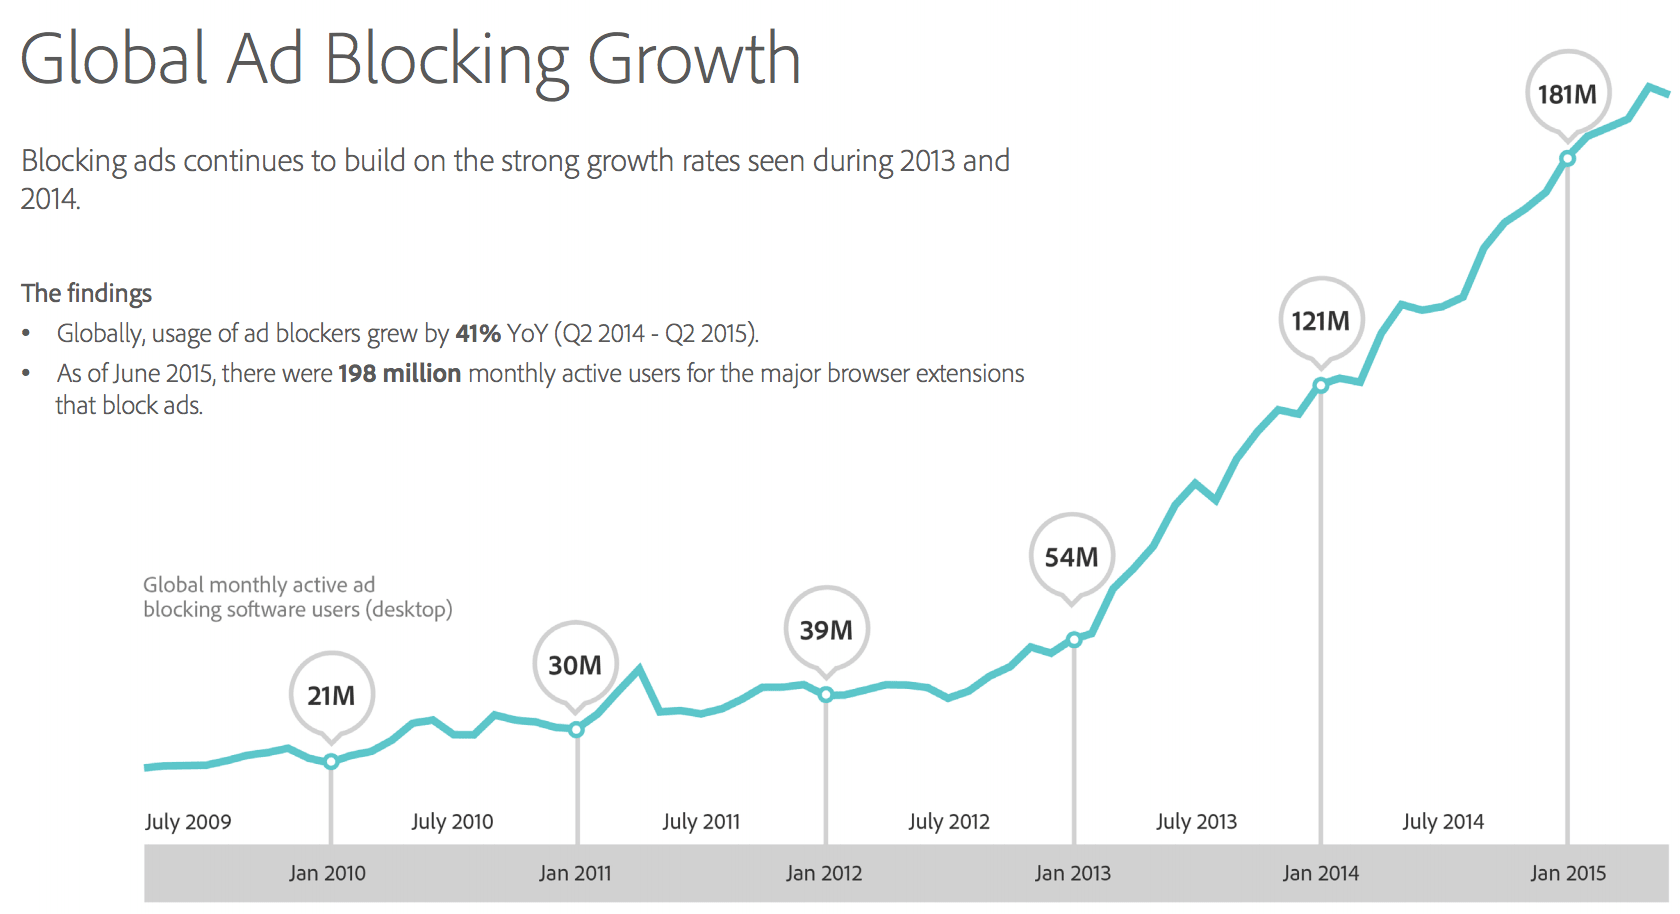 Global Ad Block Growth